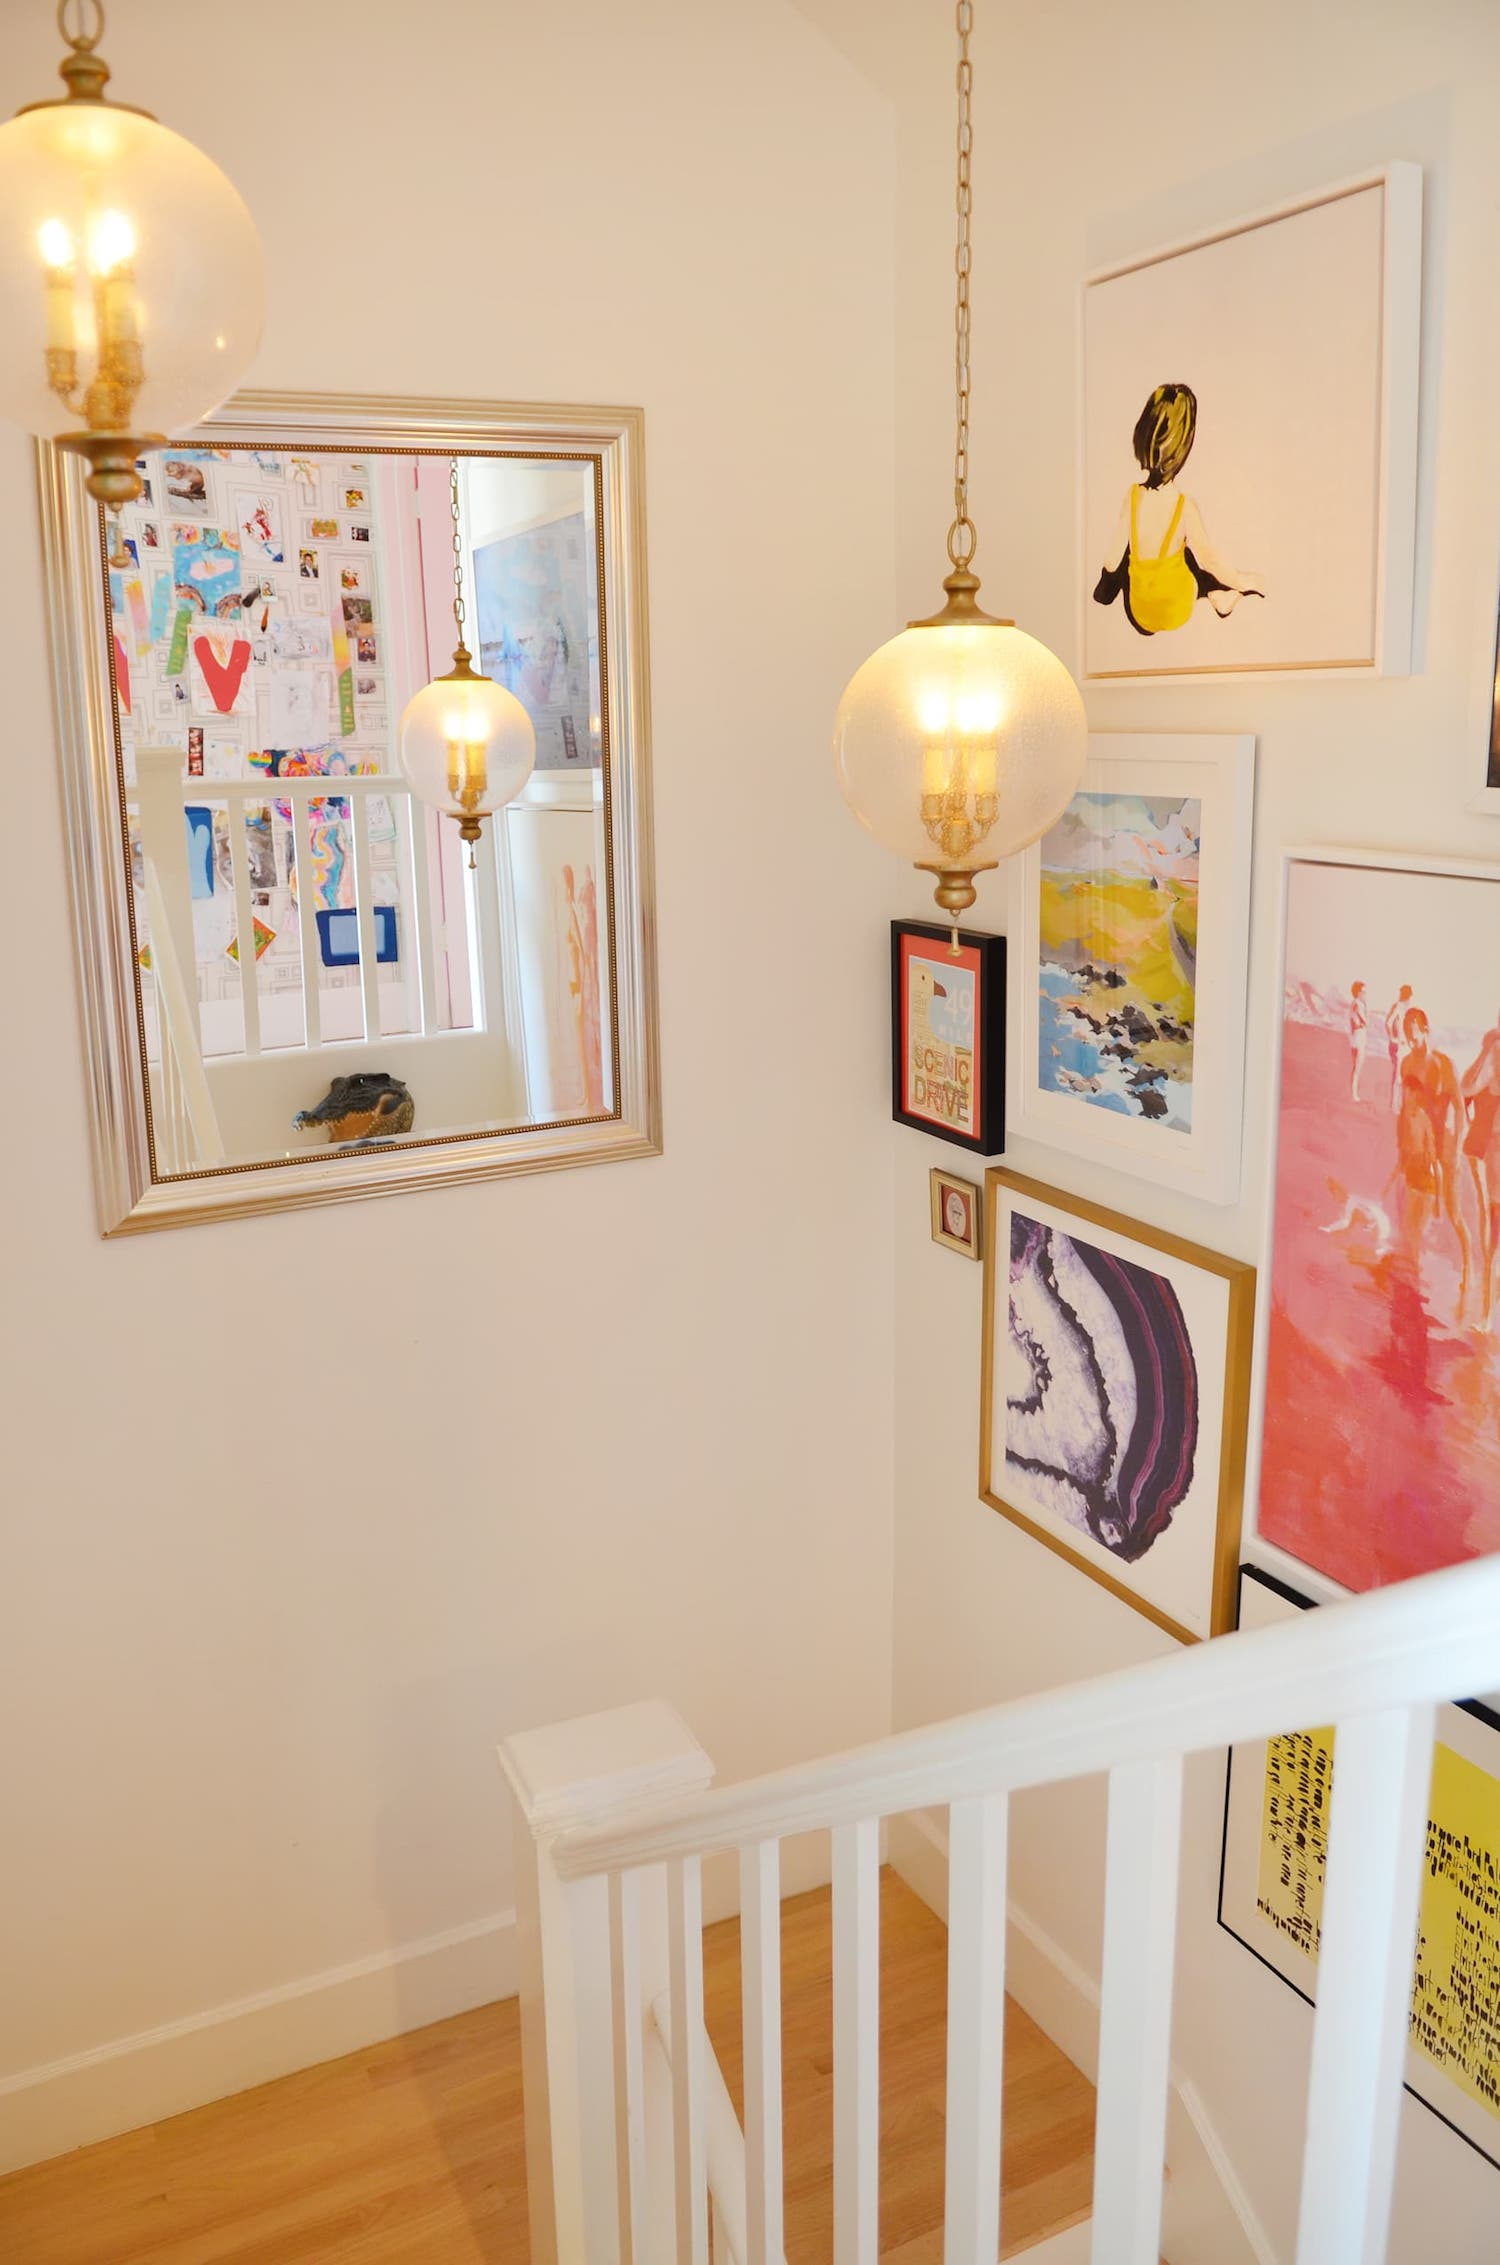 staircase with white railing and gold light fixtures and bright wall art.jpeg